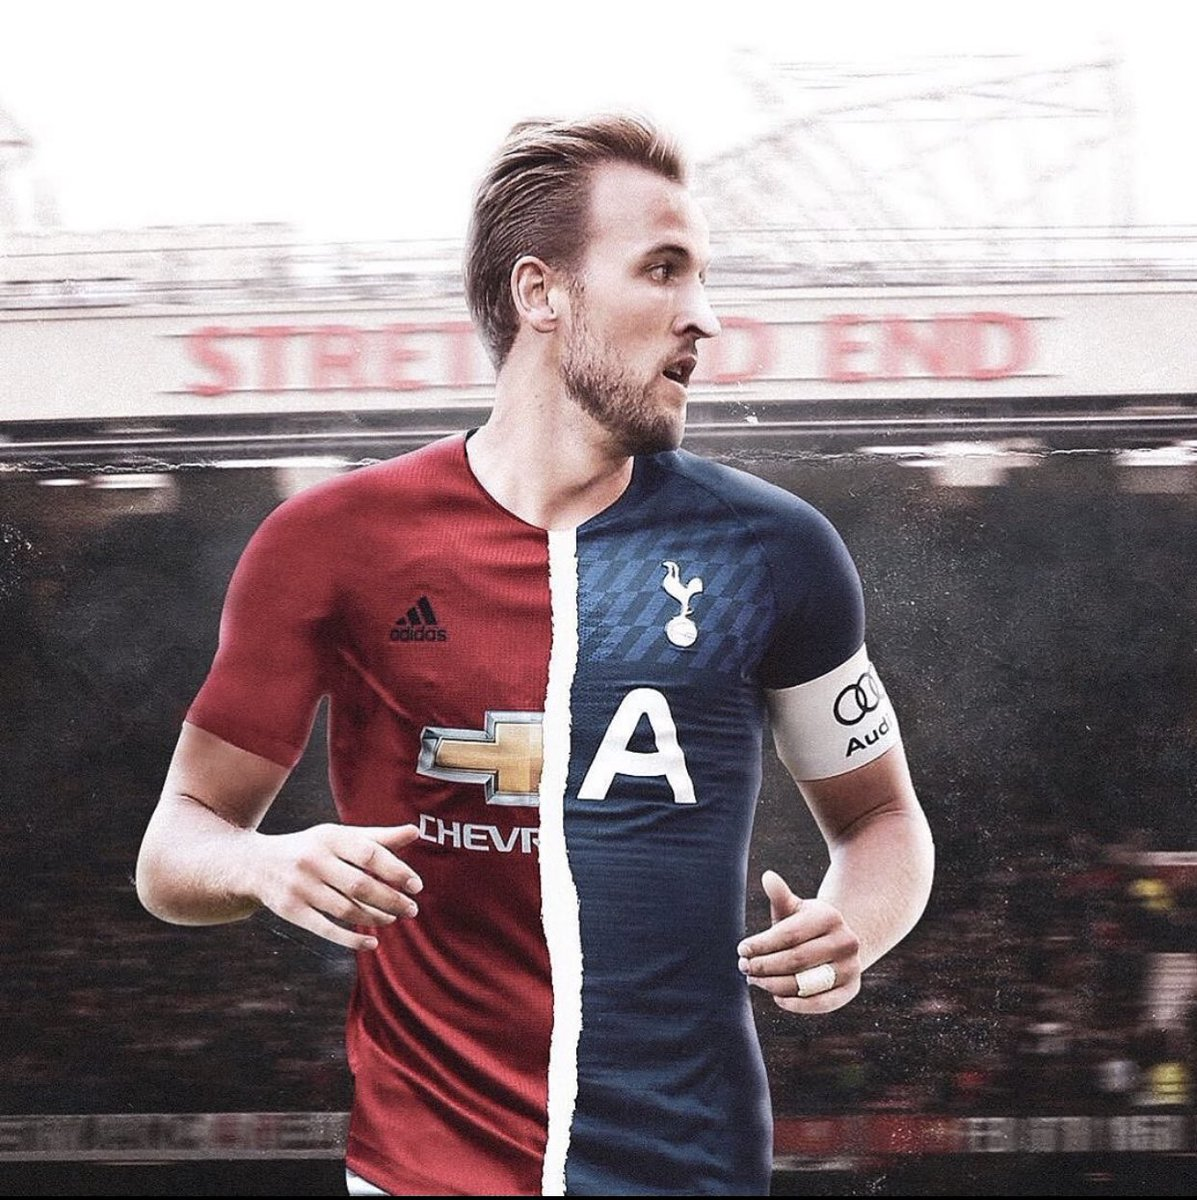 Transfer News On Twitter Harry Kane Would Be Very Open To Signing For Manchester United This Summer If A Deal Can Be Done Between Man Utd And Spurs The 26 Year Old Is Desperate